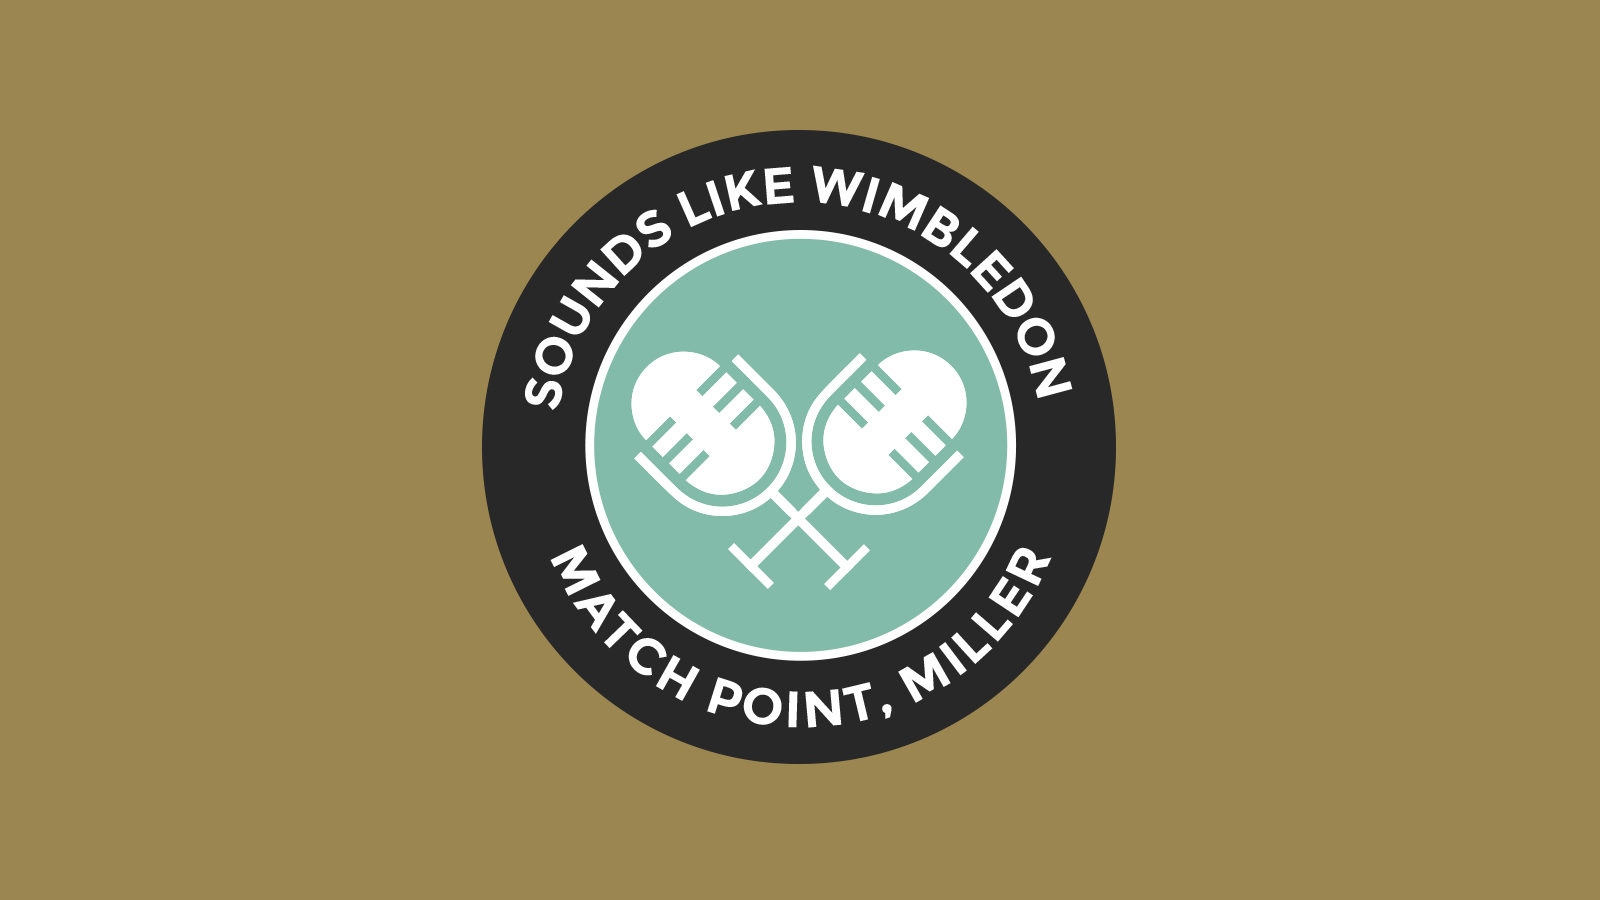 Sounds like Wimbledon – Match Point Miller